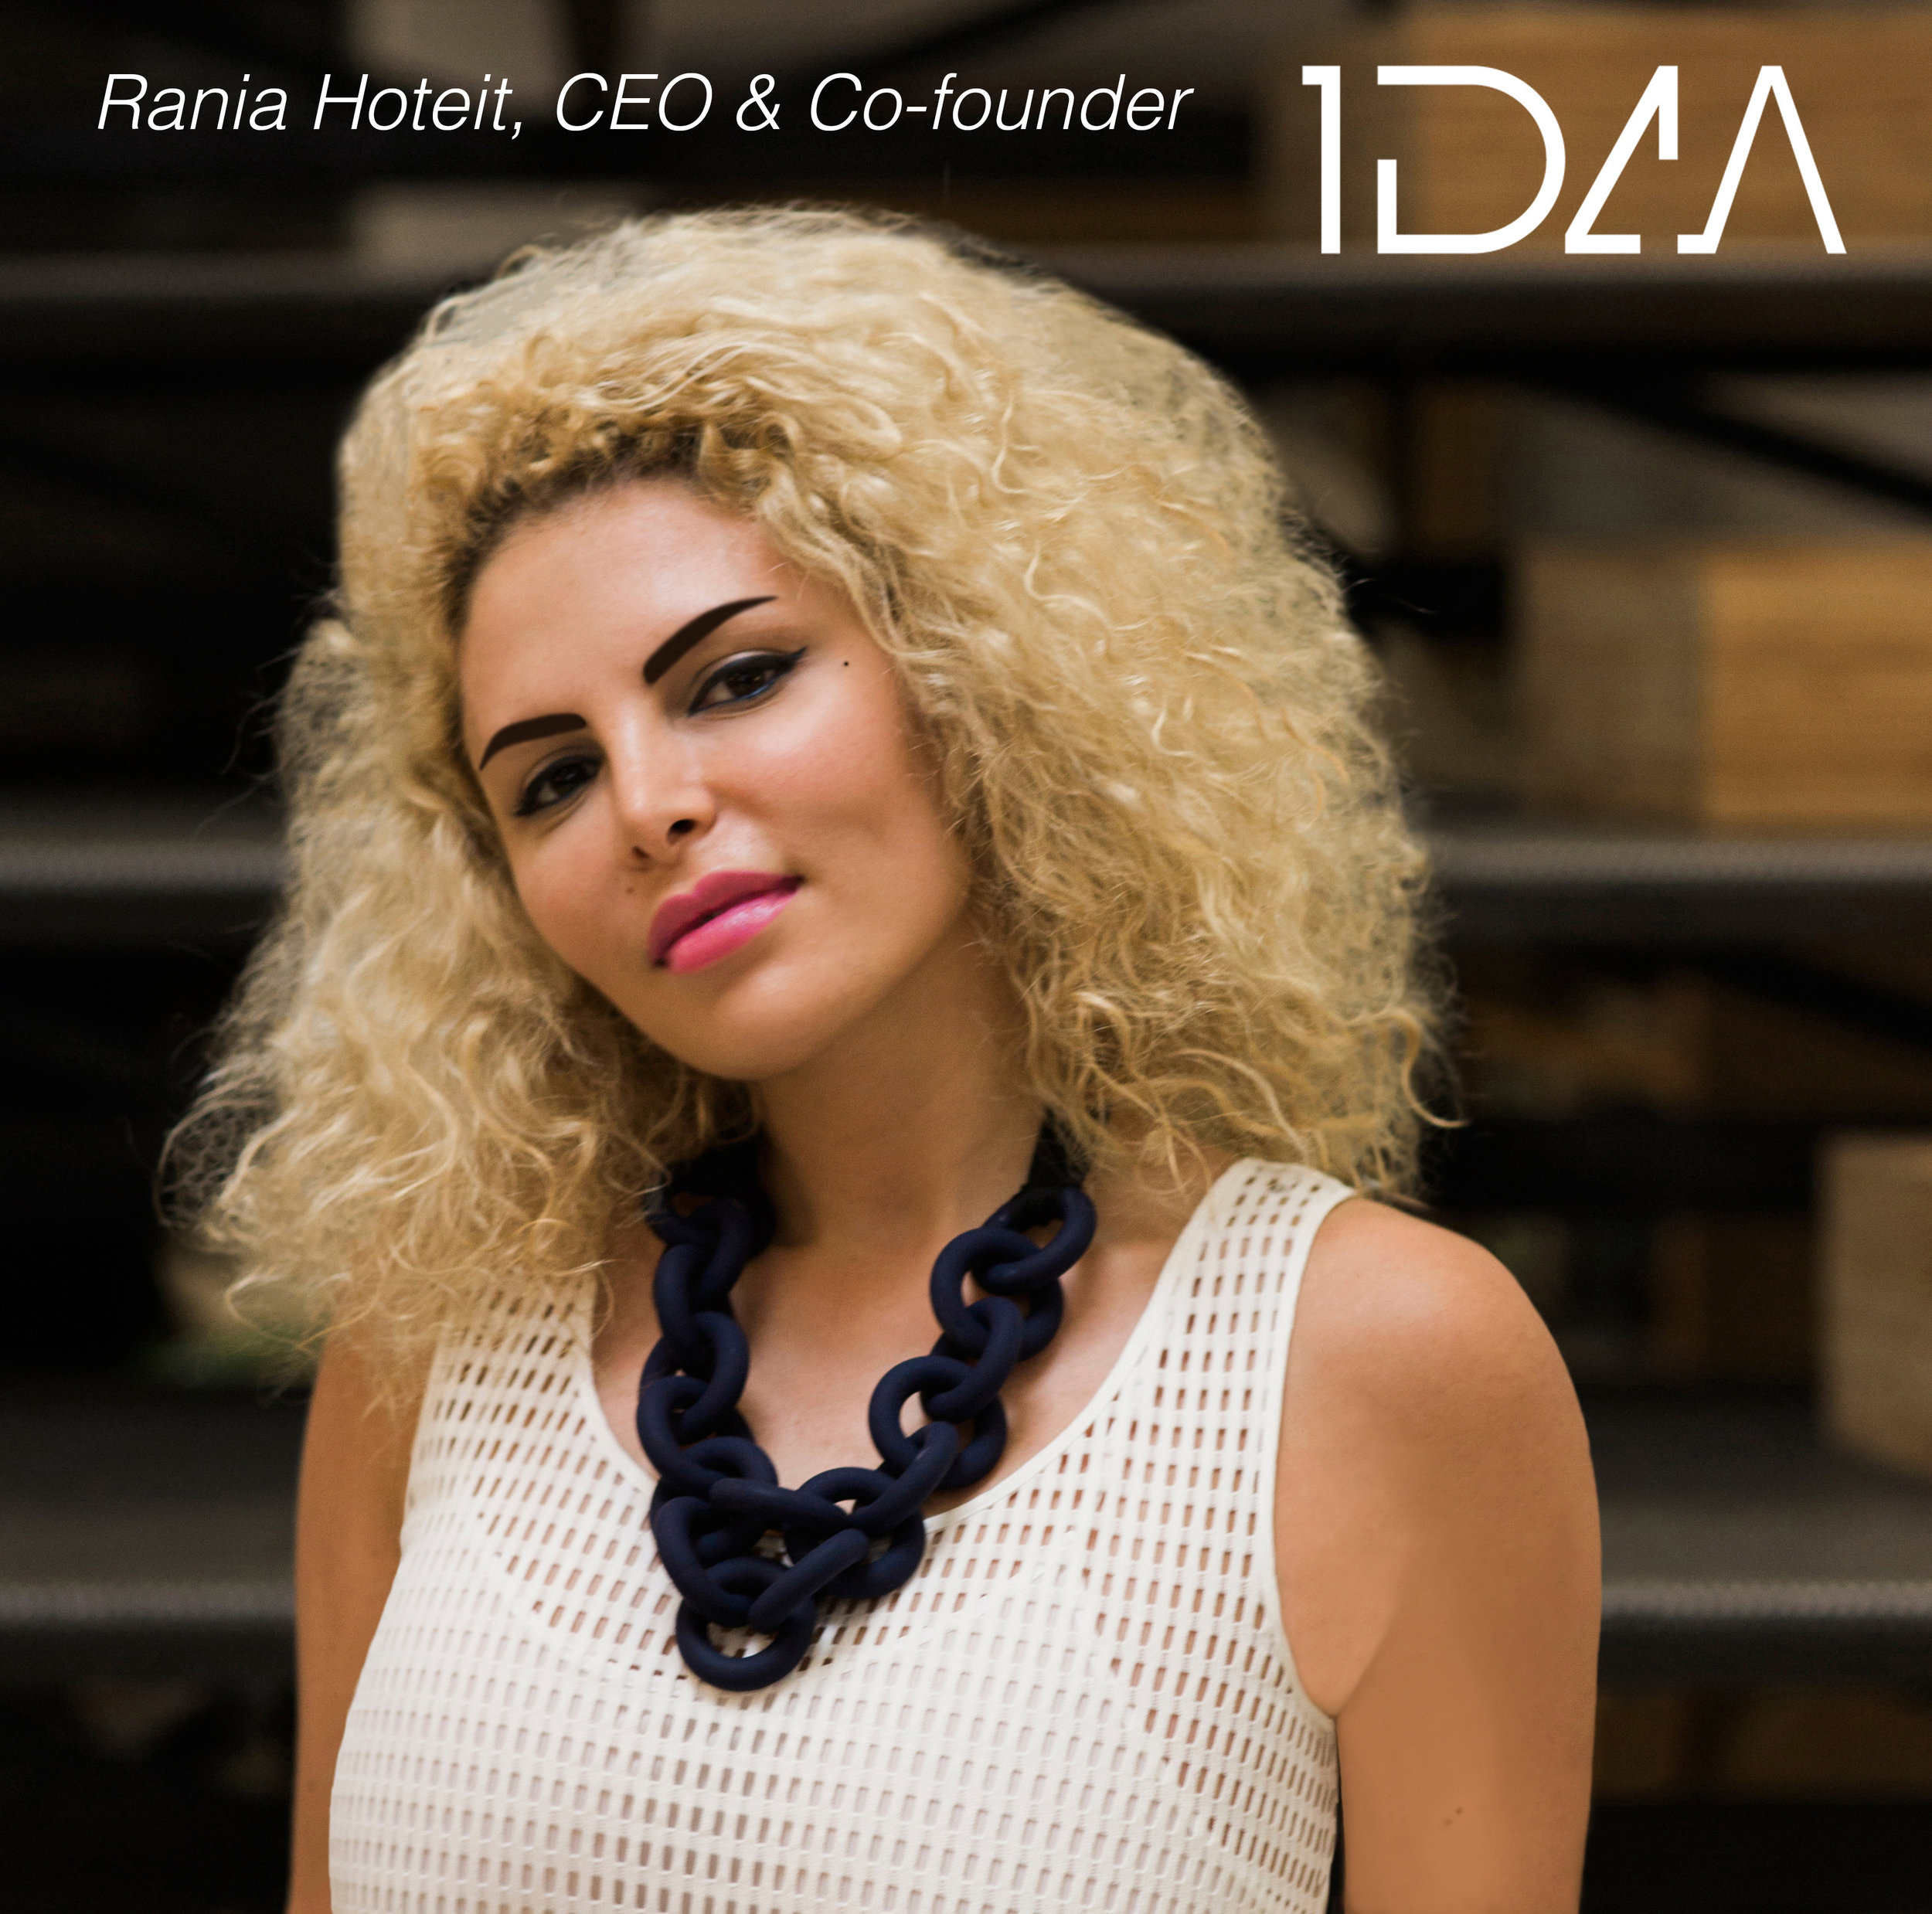 Re-Inventing the Wheel: Putting a New Spin on Life with Rania Hoteit -